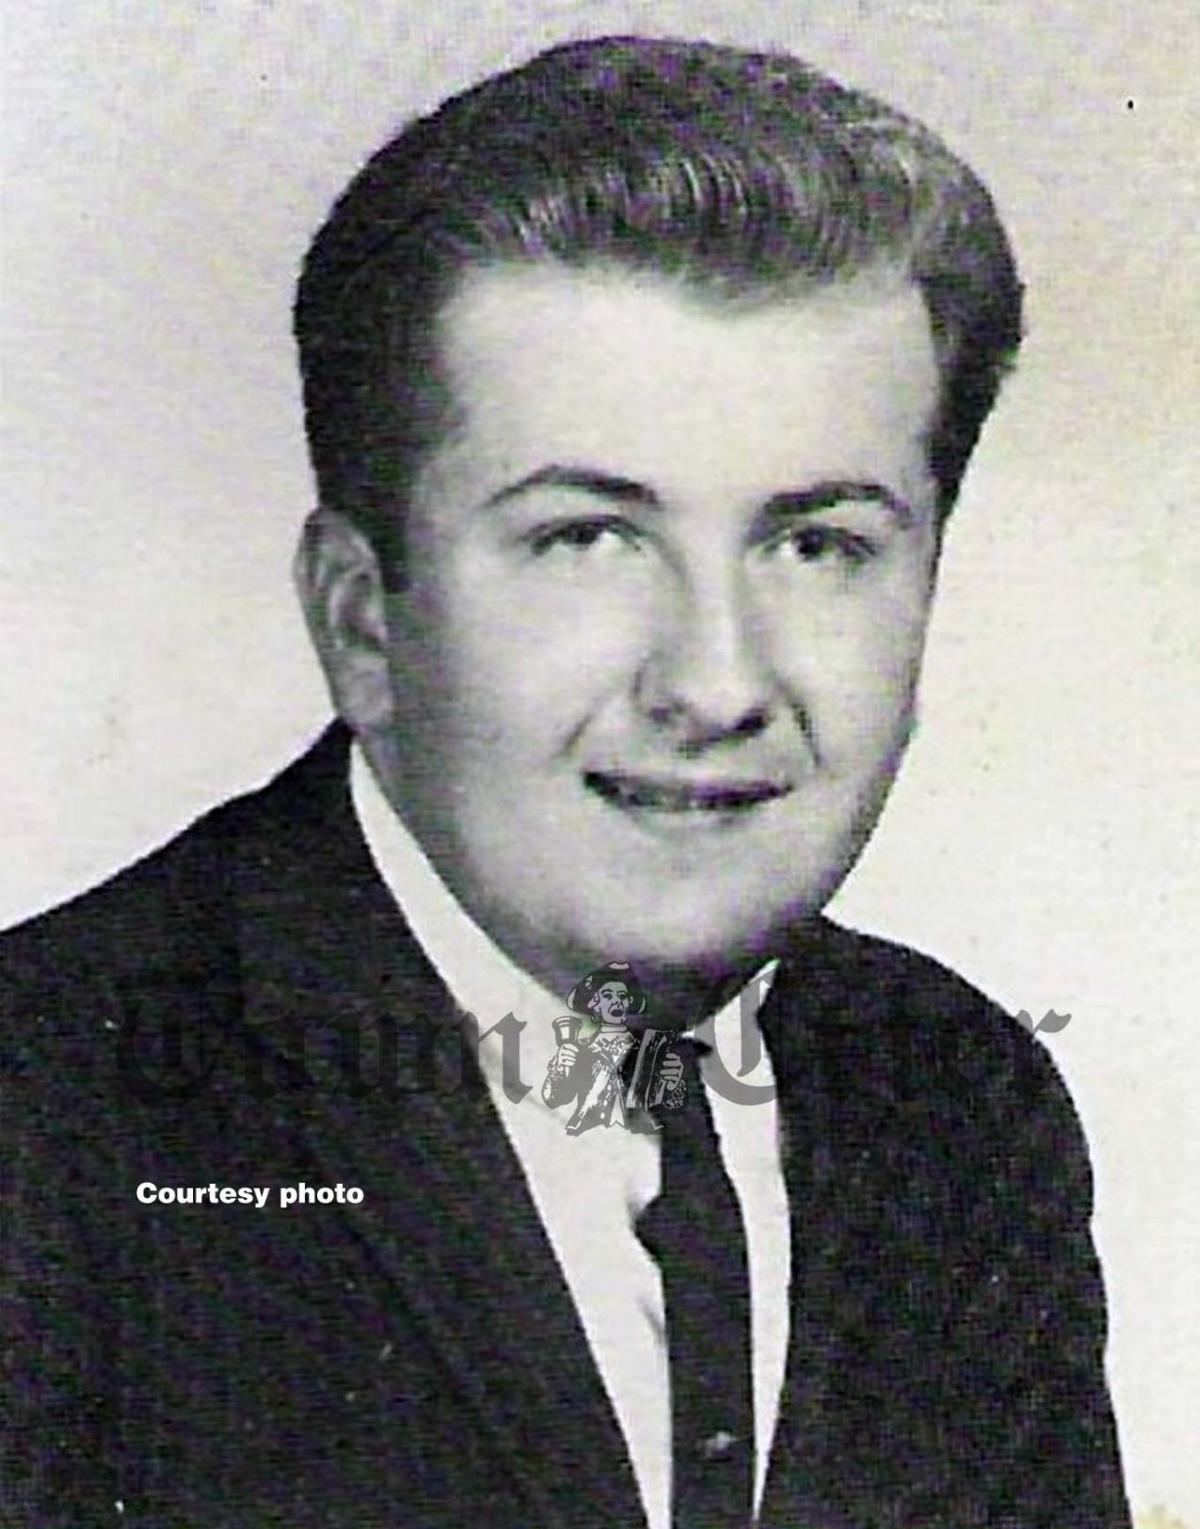 Roy Flagg's yearbook photo